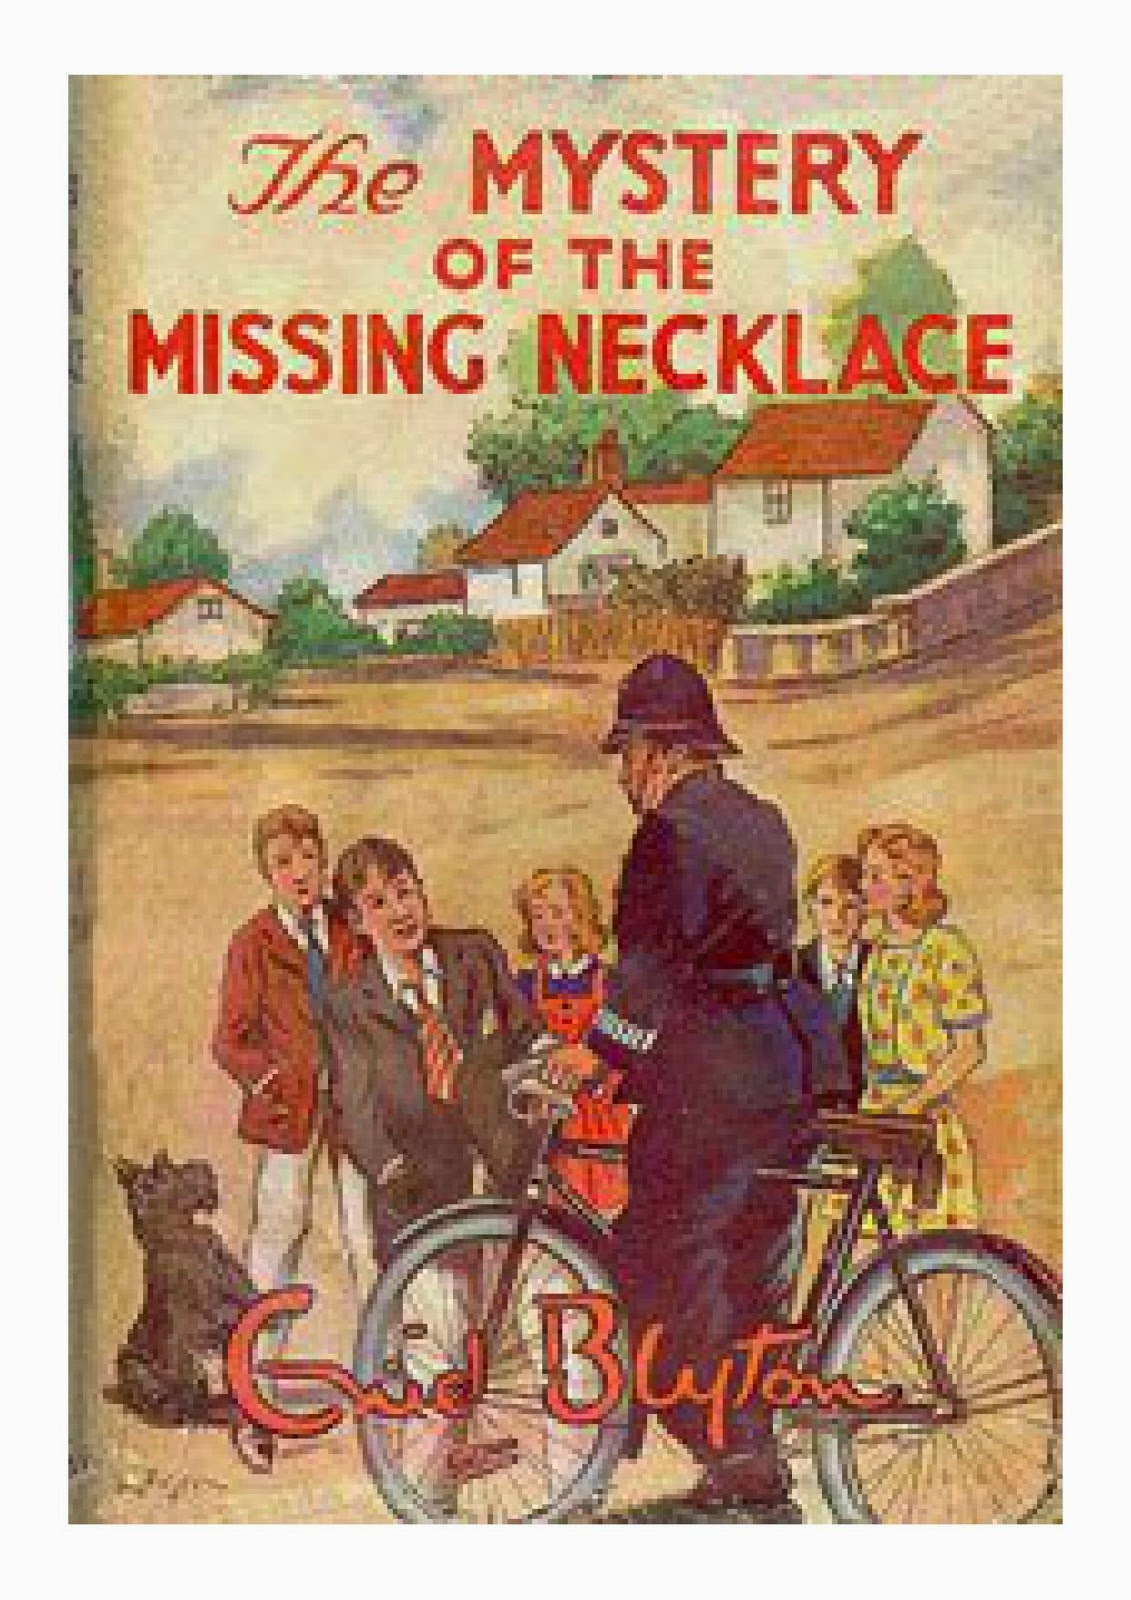 Read Enid Blyton Stories May 2015 Mystery Of The Vanished Prince Pip And Bets Sat In Their Garden Very Coolest Place They Could Find Had On Sun Suits Nothing Else For August Was Blazing Hot